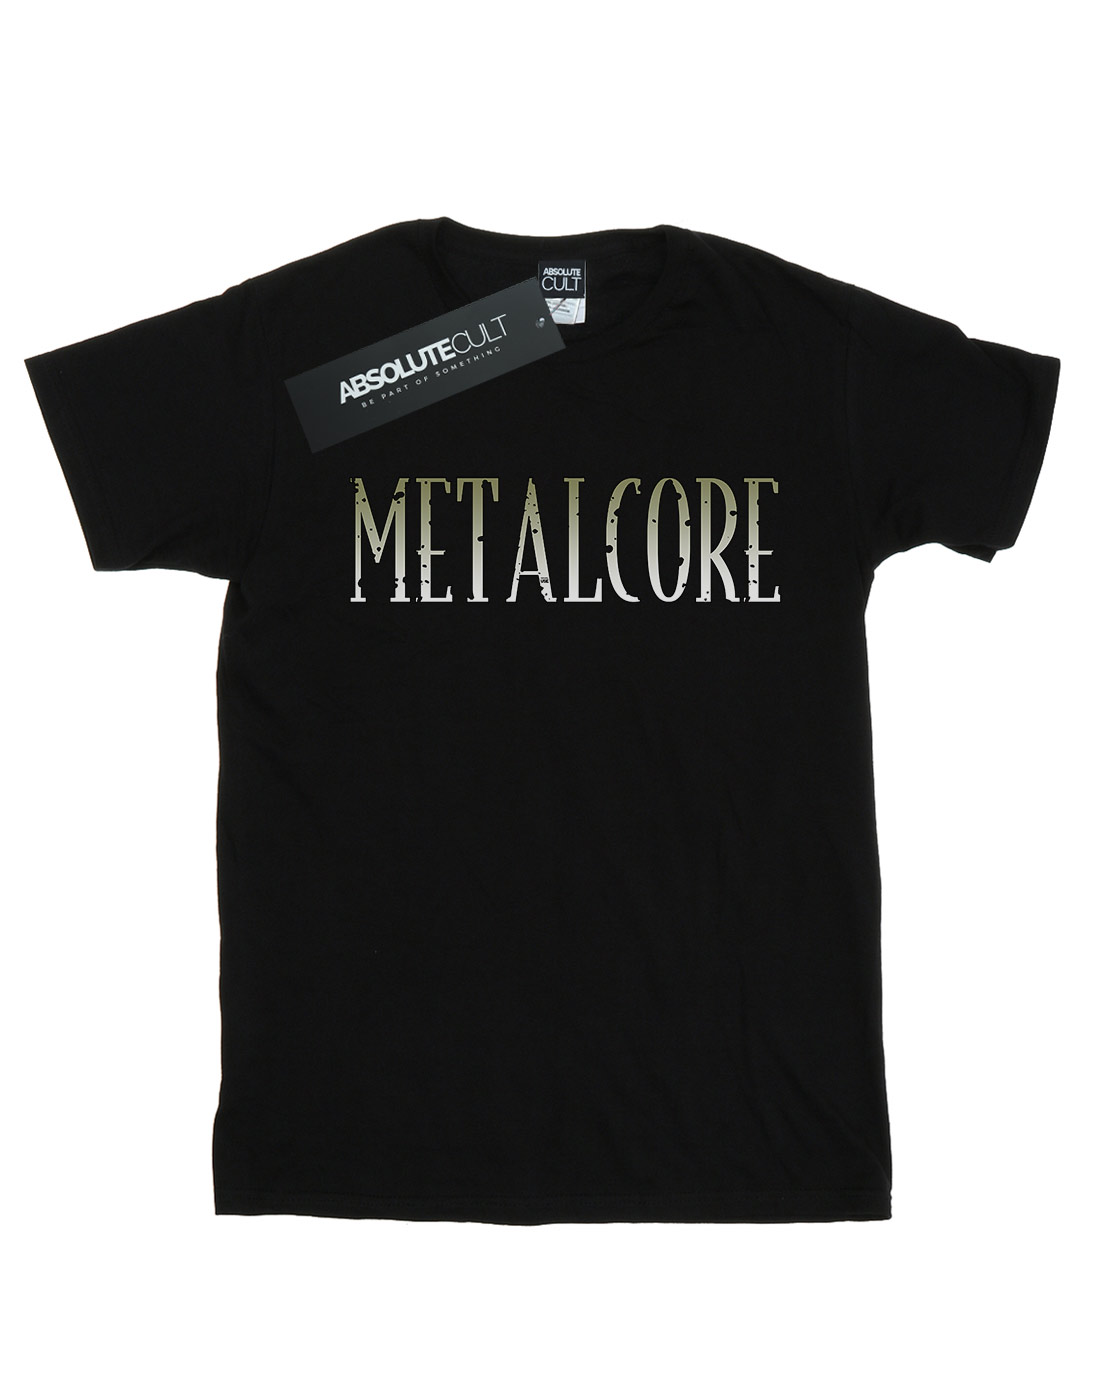 Drewbacca-Men-039-s-Dying-Metalcore-T-Shirt thumbnail 5